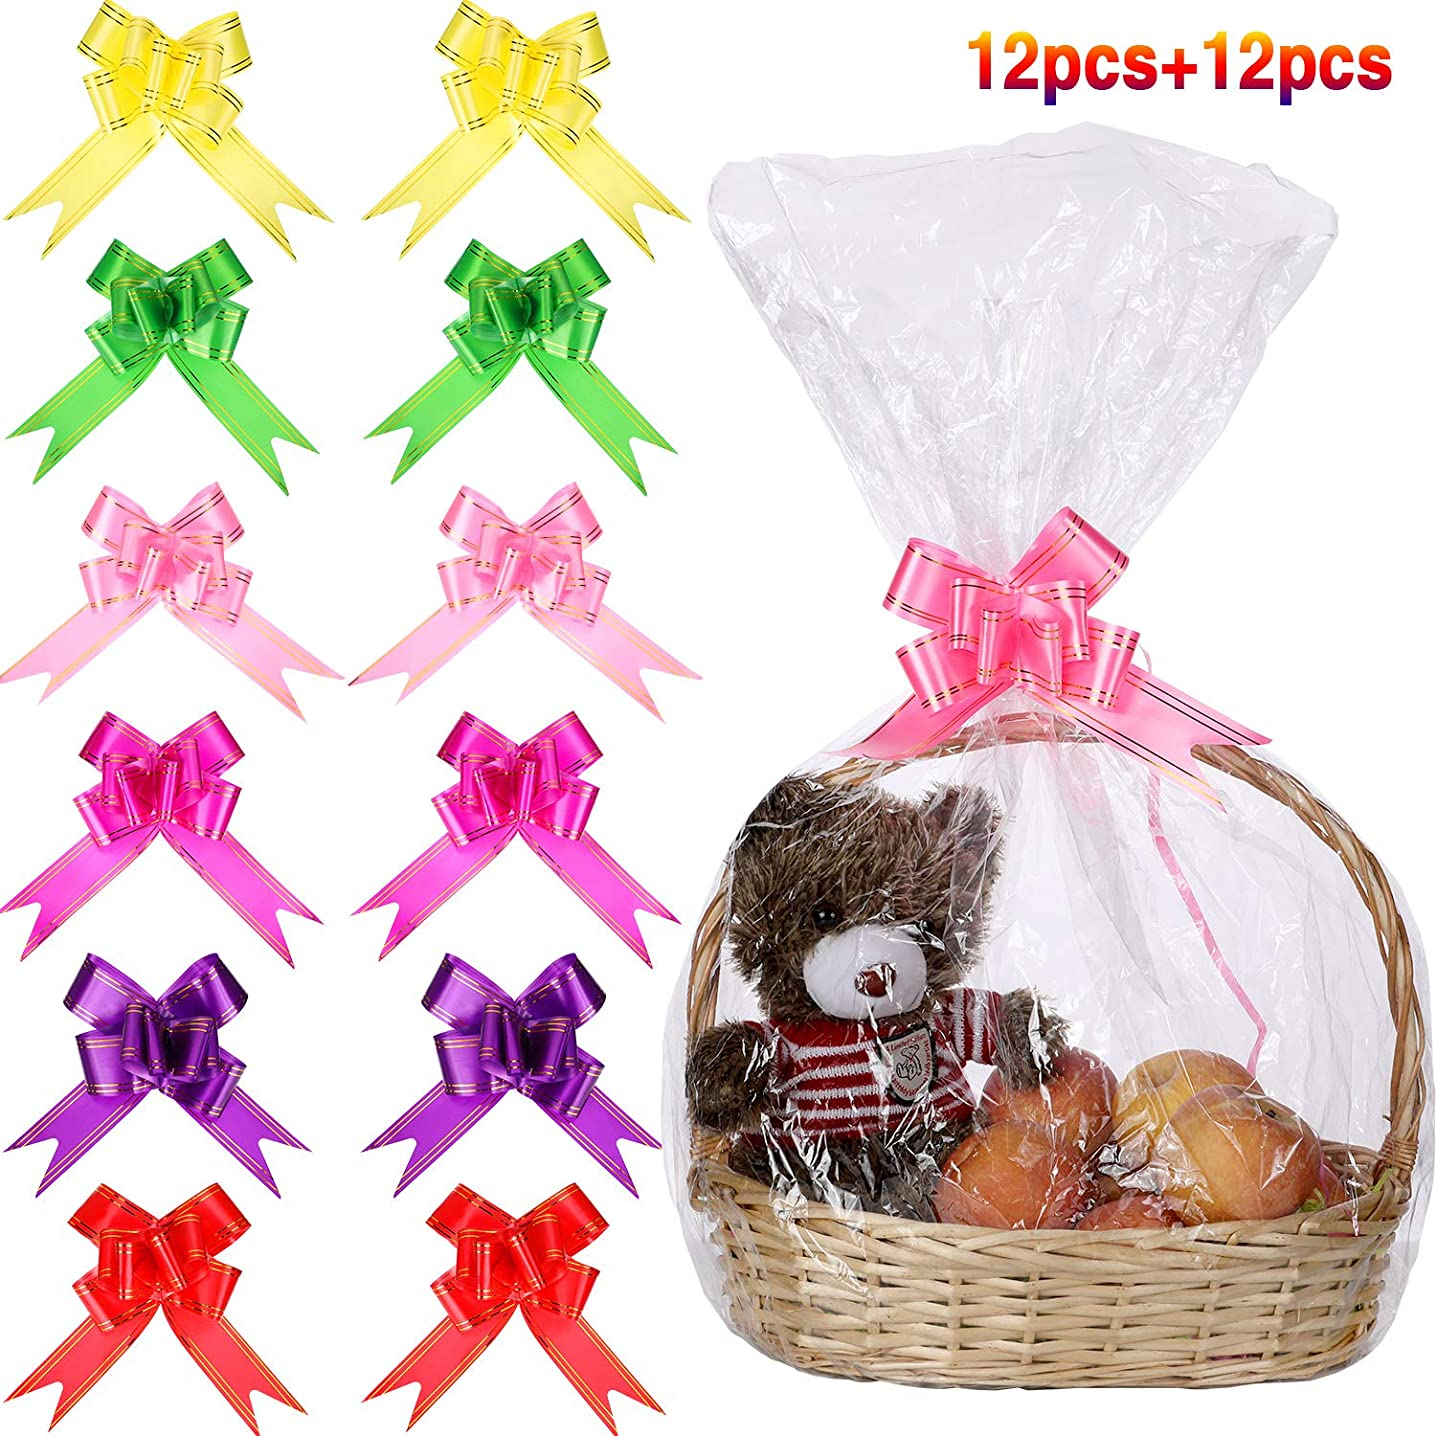 12 Pieces Clear Basket Bags Cellophane Wrap Bag and 12 Pieces Pull Bow Knot Ribbon Bows for Gift Basket Wrapping, 32 by 22 Inches